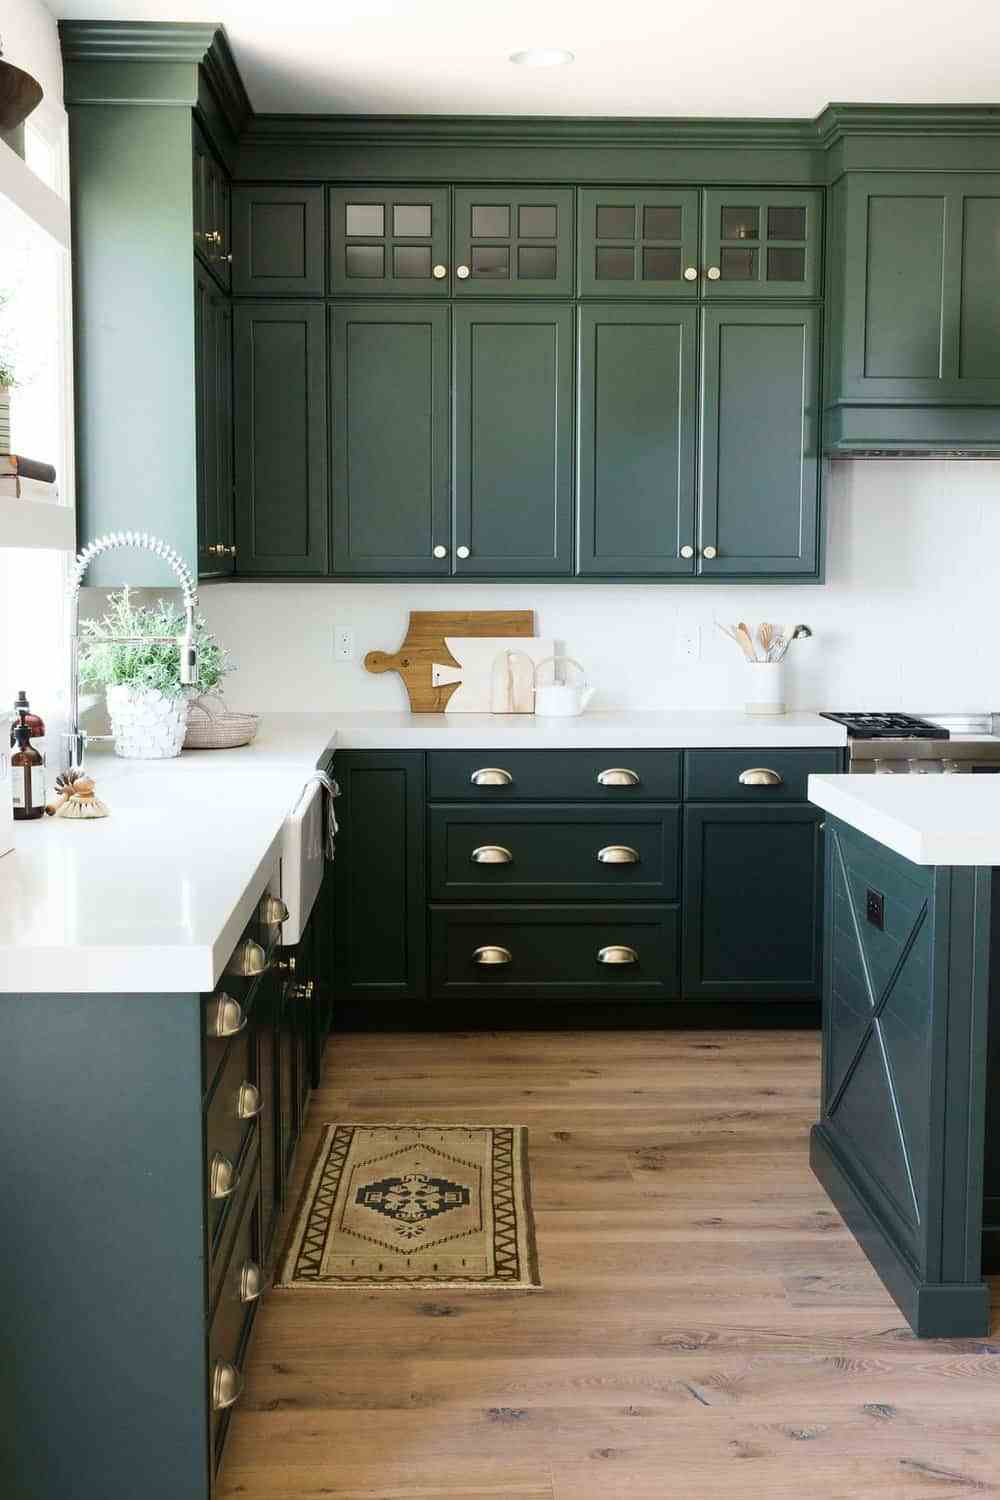 Glossy kitchen cabinets painted dark green color Dunn Edwards Black Spruce